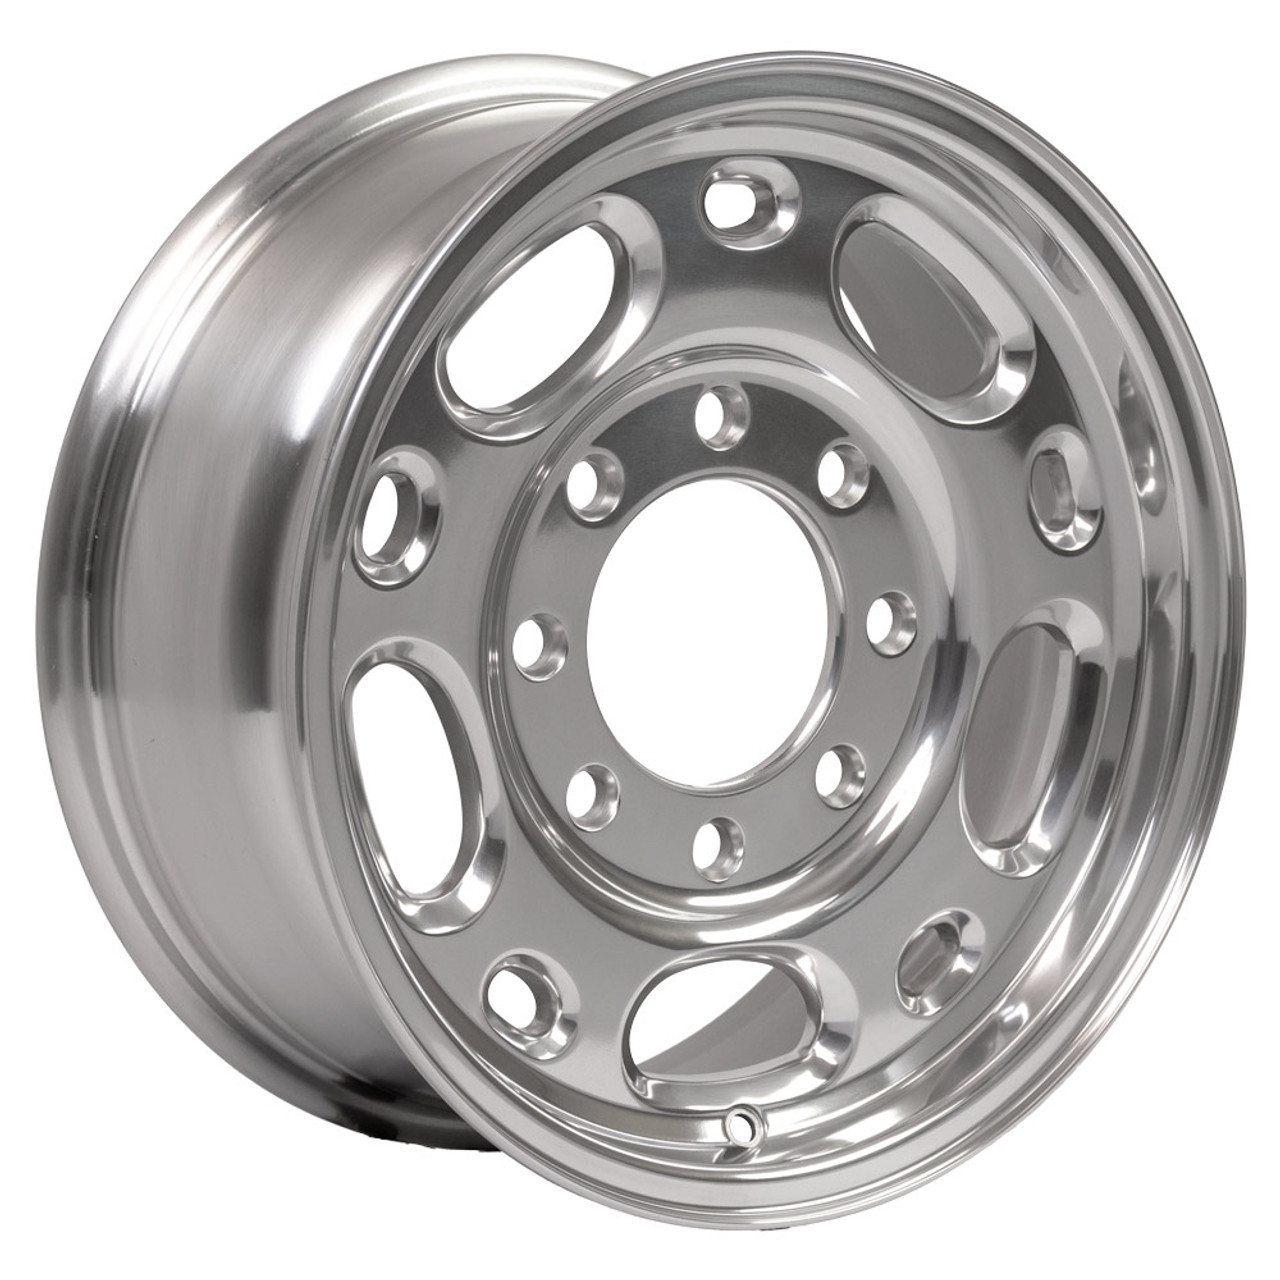 16 Fits Chevrolet Chevy 2500 Suburban Silverado Wheels Polished Set Of 4 16x6 5 Rims Hollander 5079